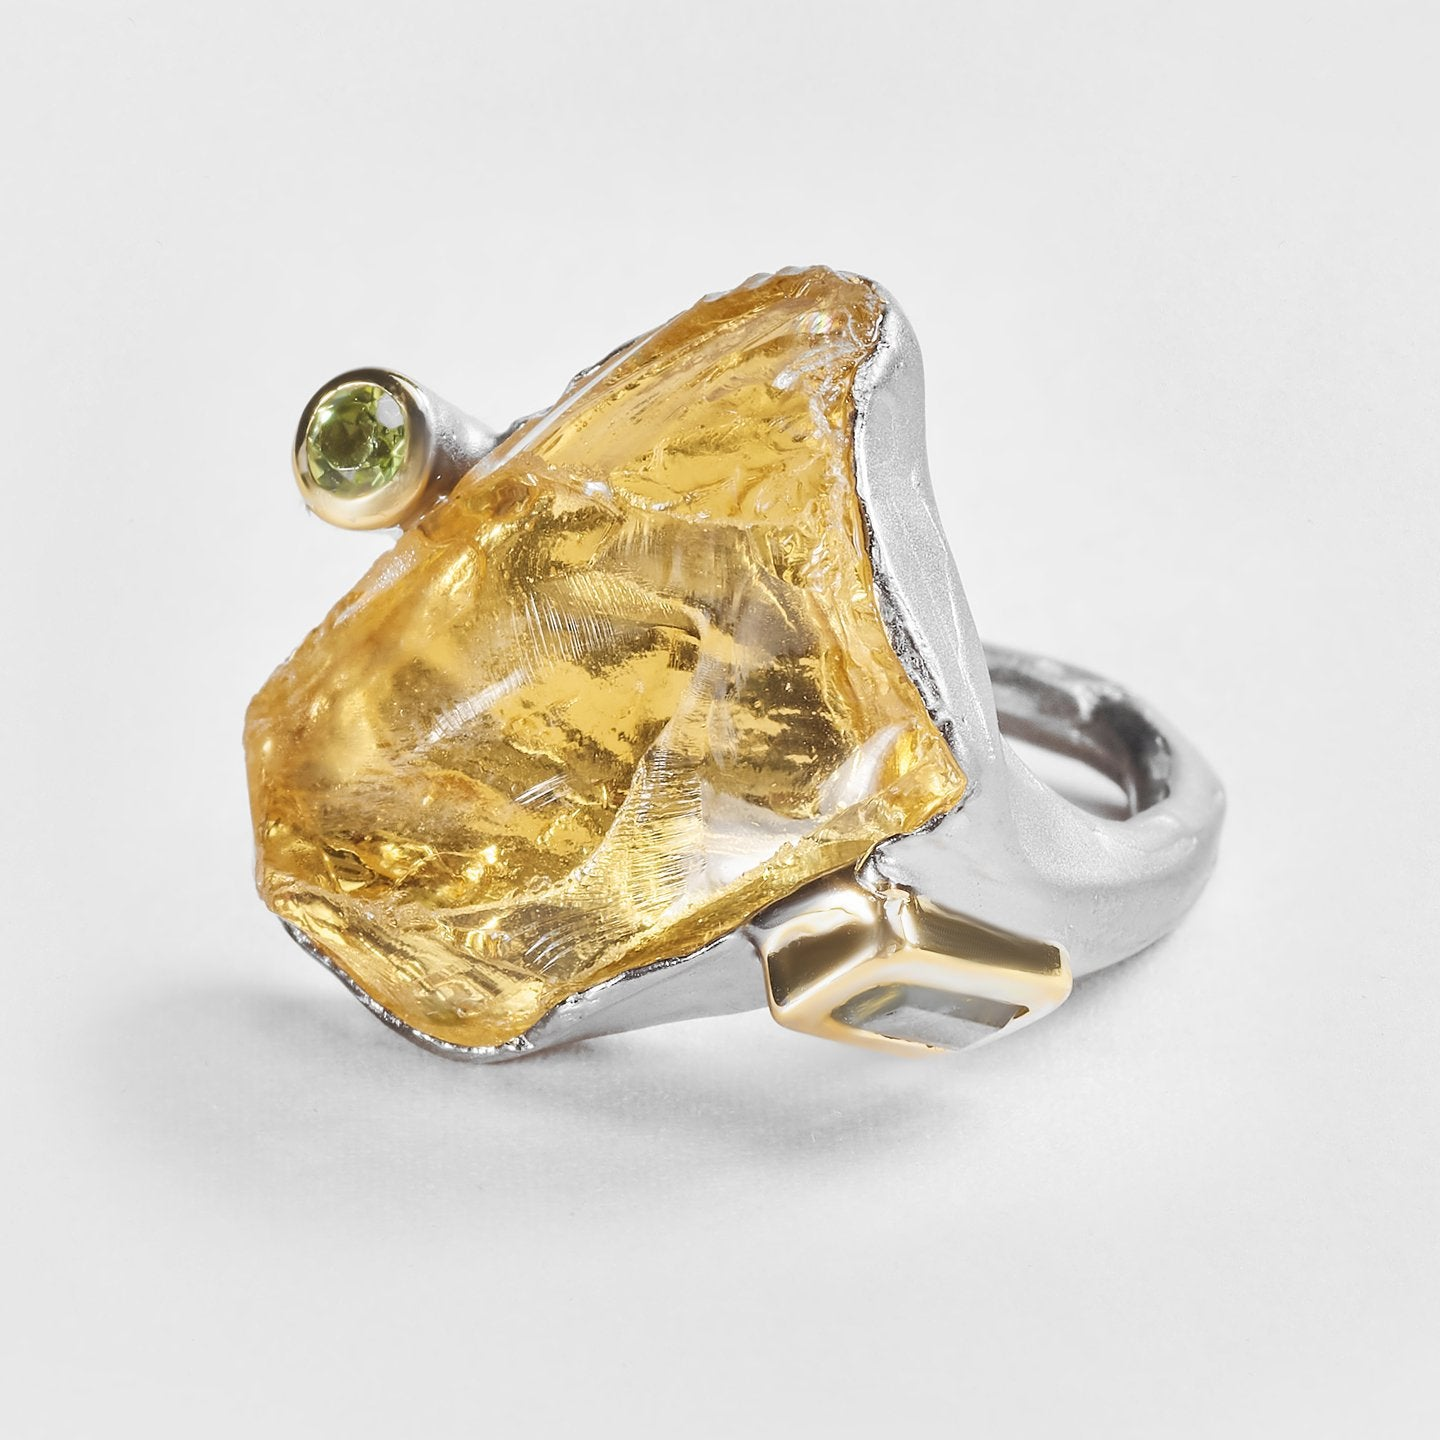 Aevil Citrine and Tourmaline Ring